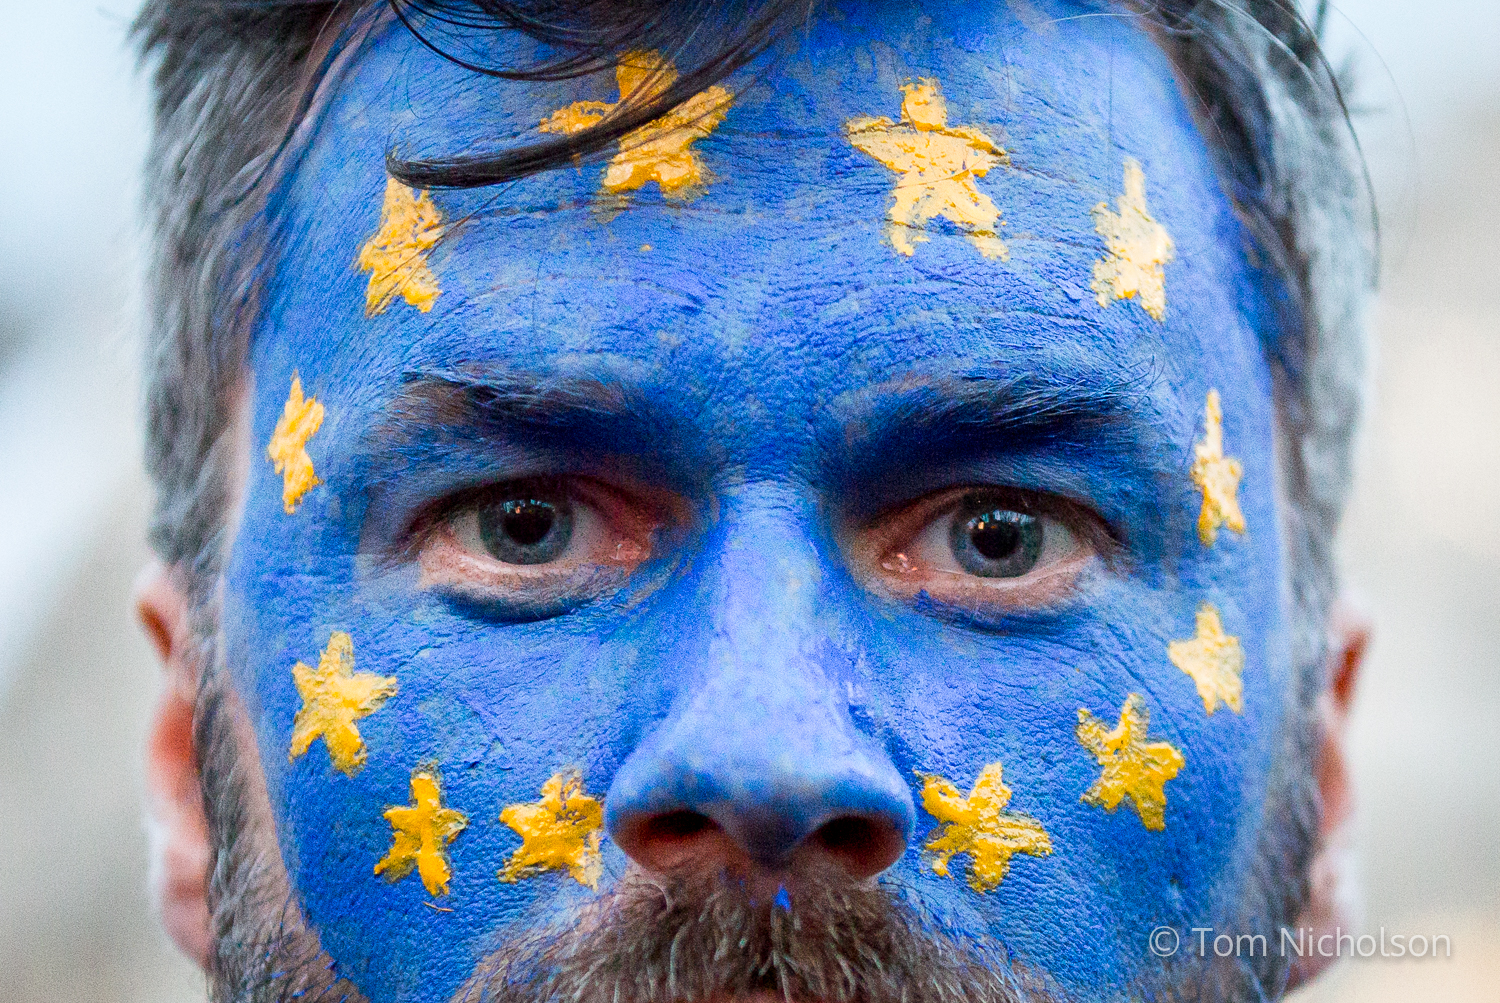 ©2017 Tom Nicholson. 20/02/2017. London, UK. A demonstrator with his face painted with the European Union (EU) flag protests against Donald Trump, whilst parliament debate a petition calling for the US President's state visit to the UK to be cancelled.